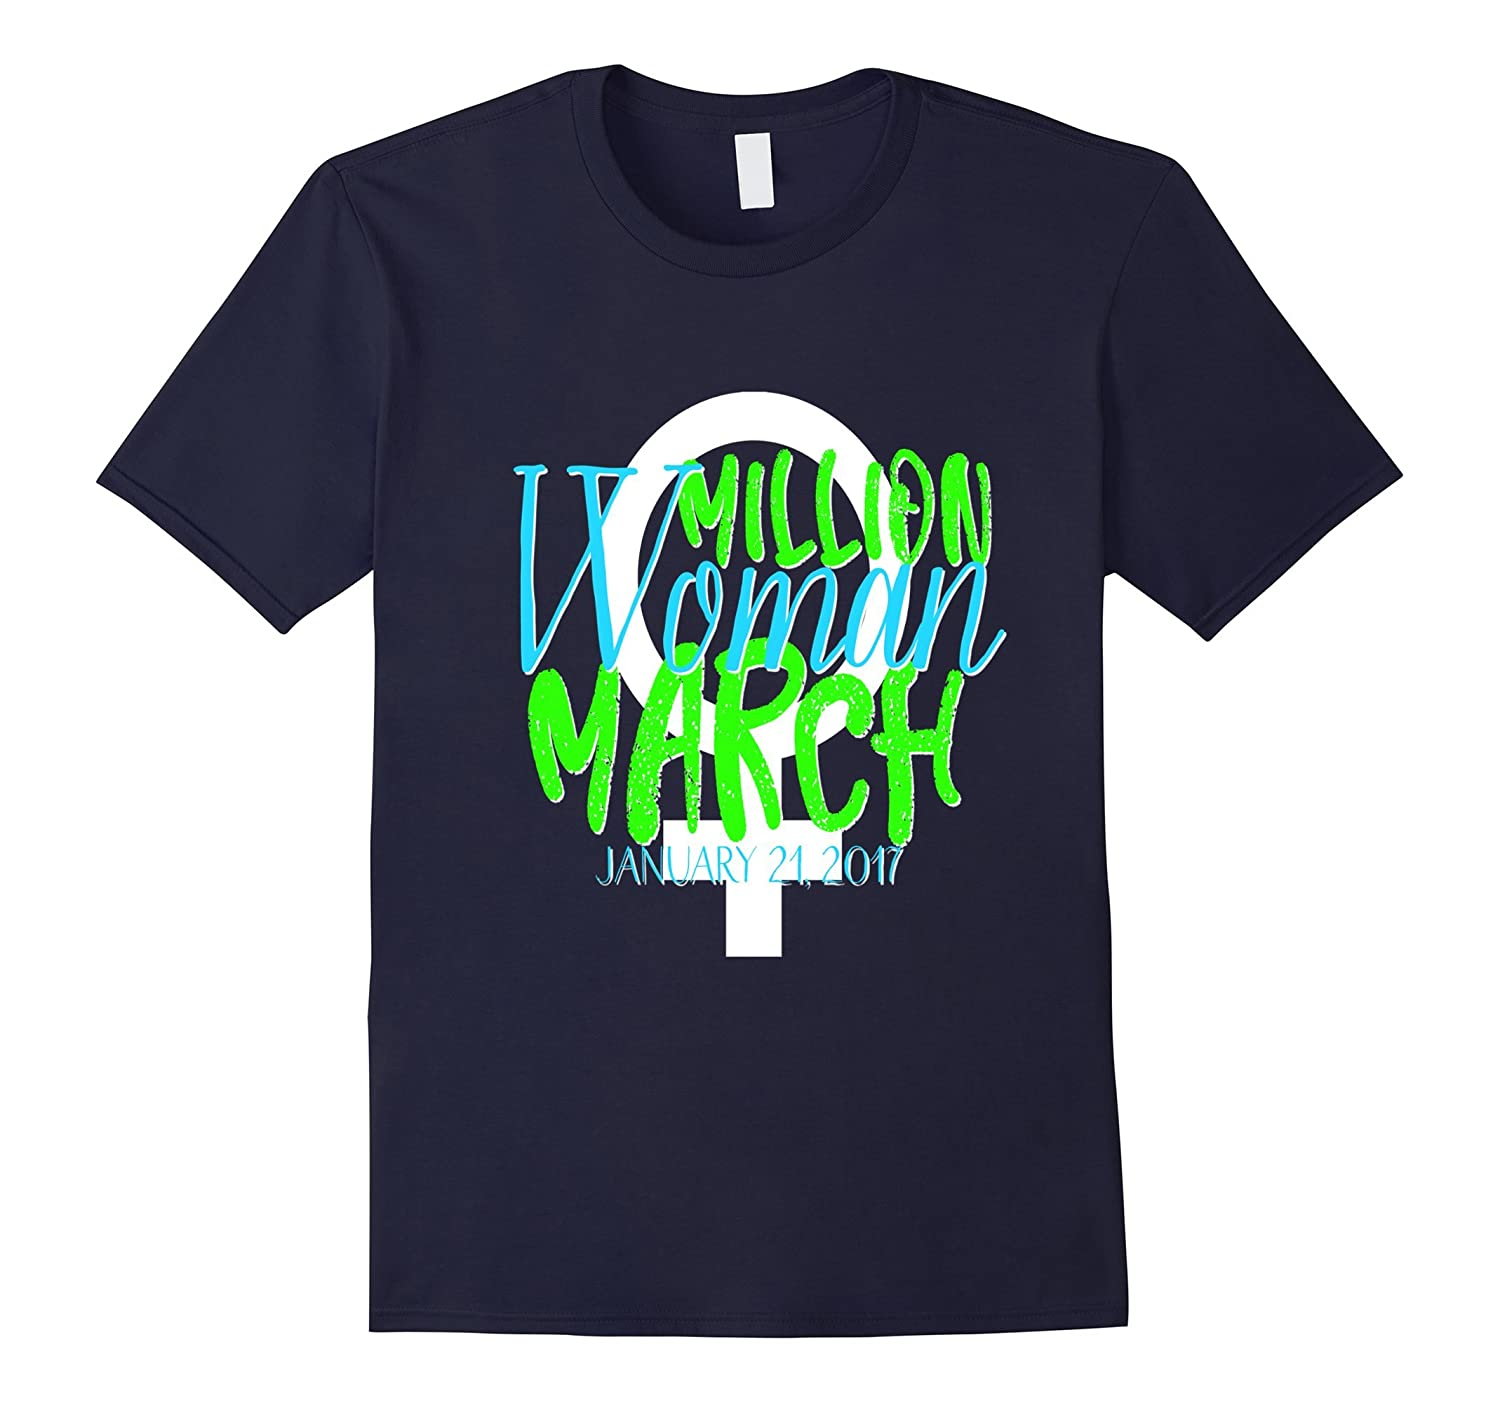 Million Women March Shirt MWM Nasty DC Feminist Lime-Art